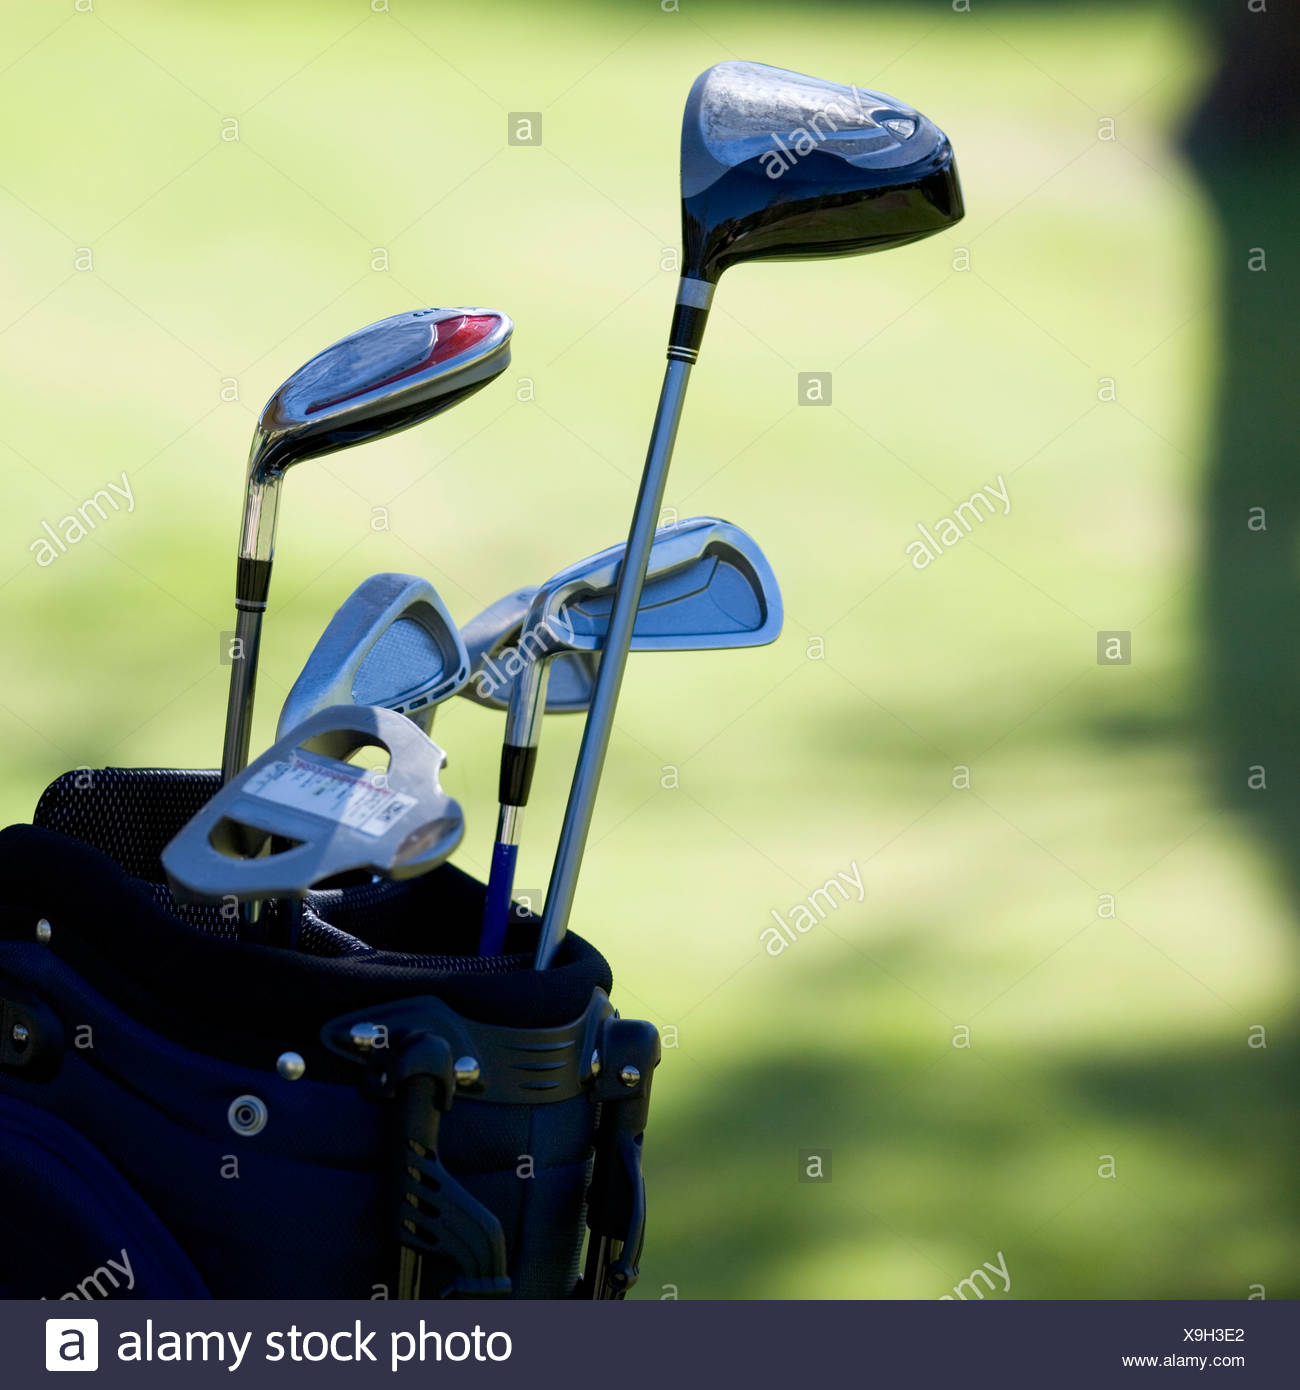 Close-up of golf clubs in a bag - Stock Image